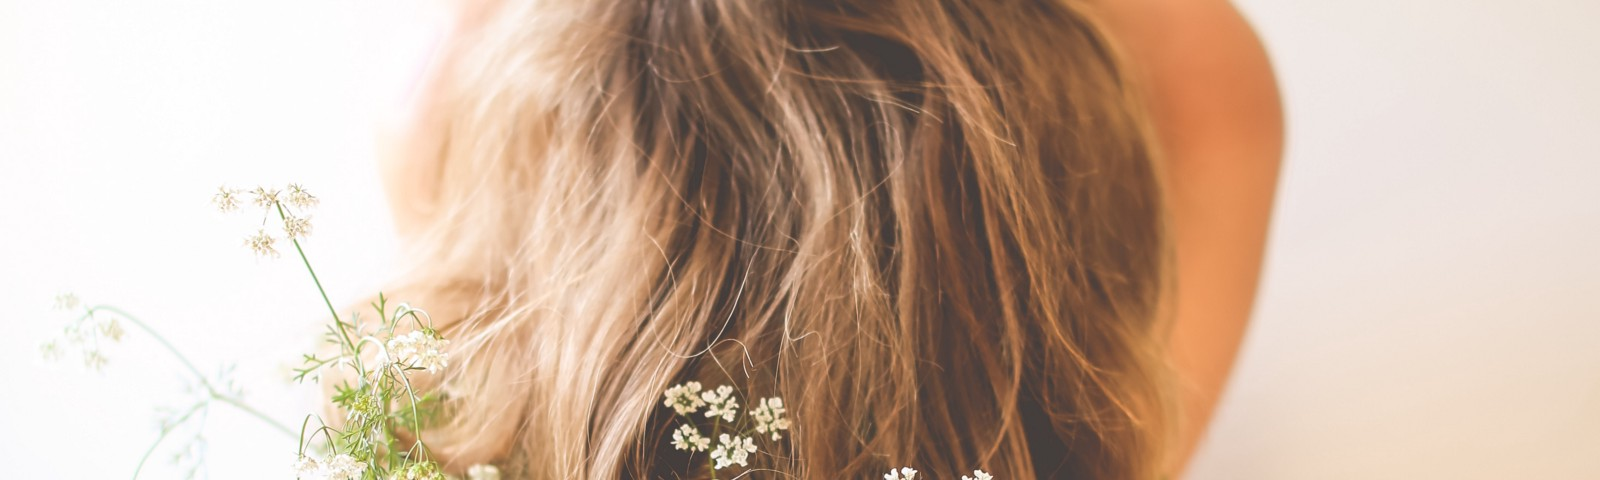 Naked blonde woman covered behind her long hair and a bouquet of greeneries with delicate white flowers.